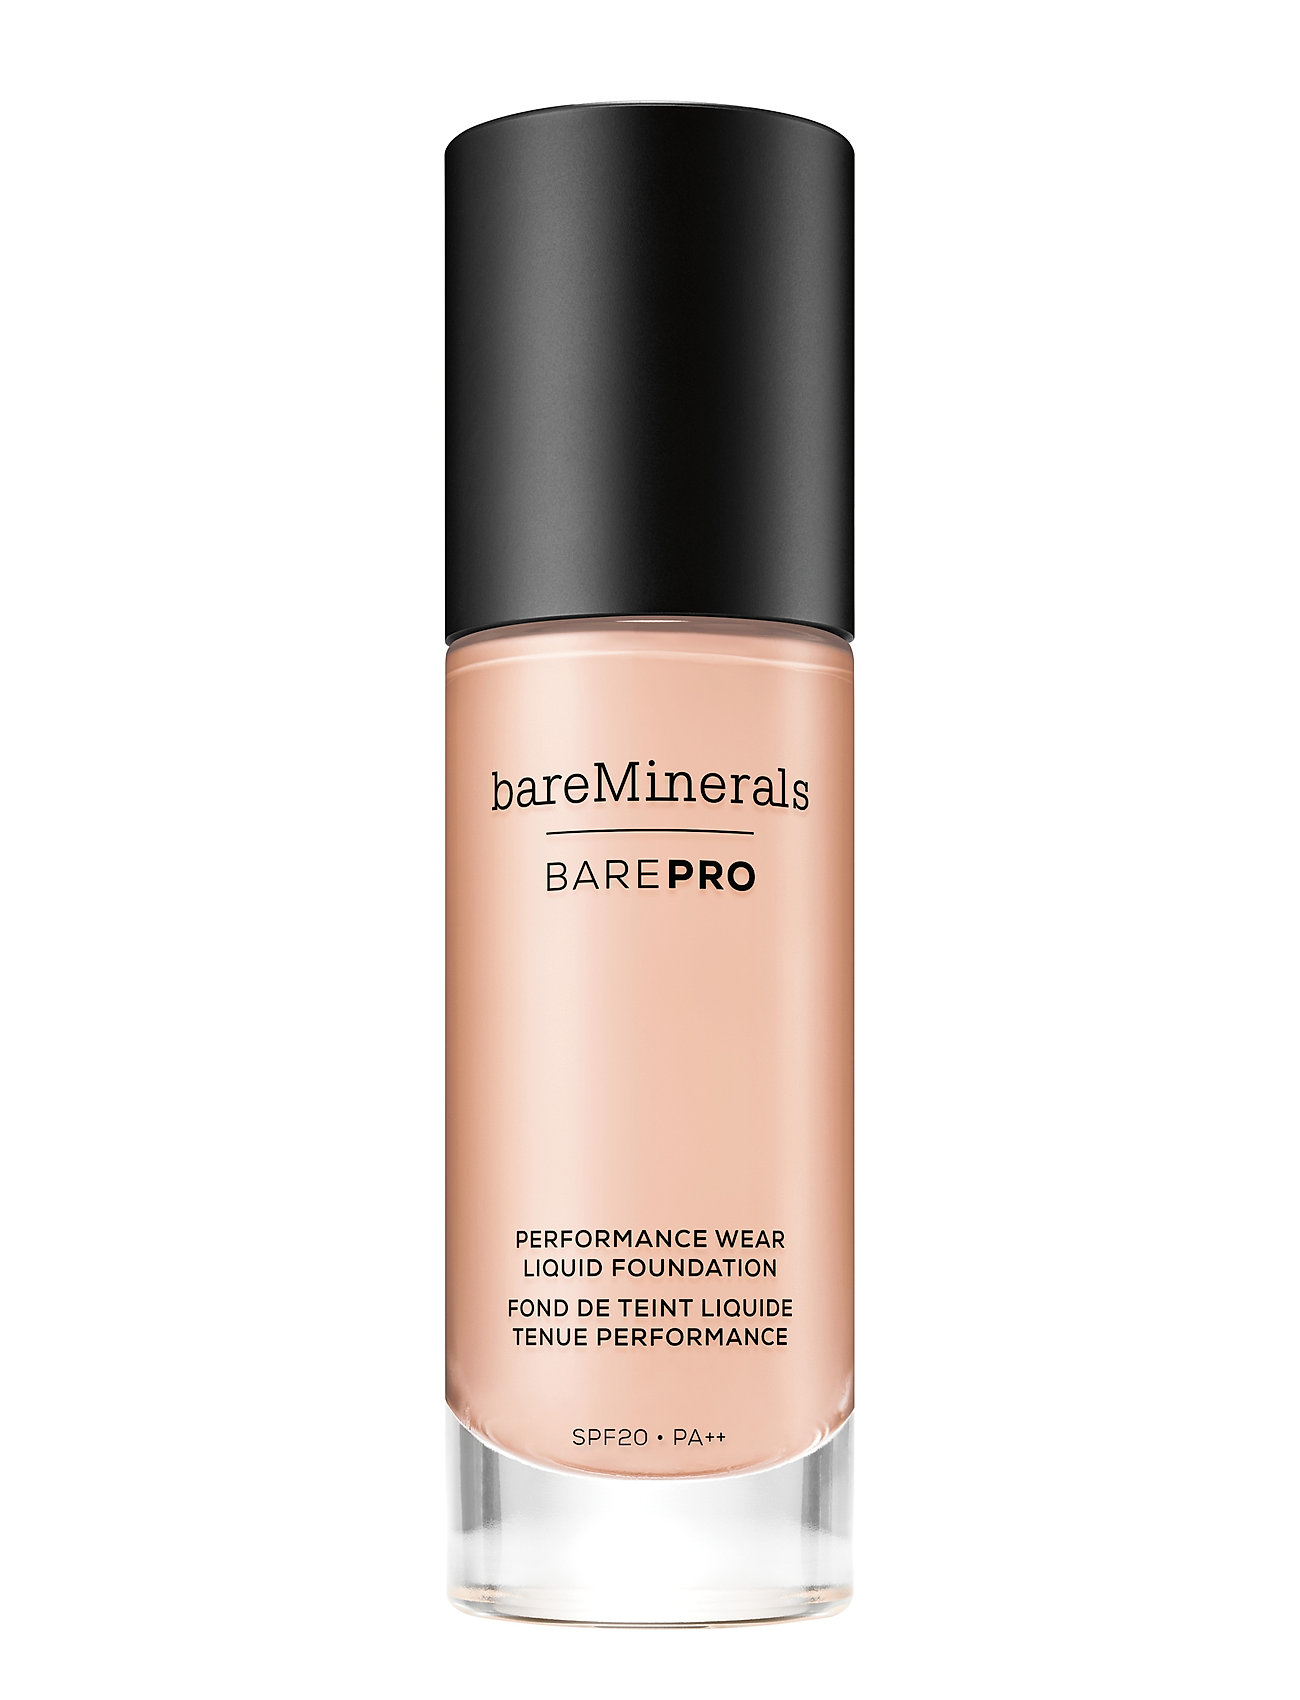 bareMinerals BAREPRO Performance Wear Liquid Foundation SPF 20 - PORCELAIN 0.5